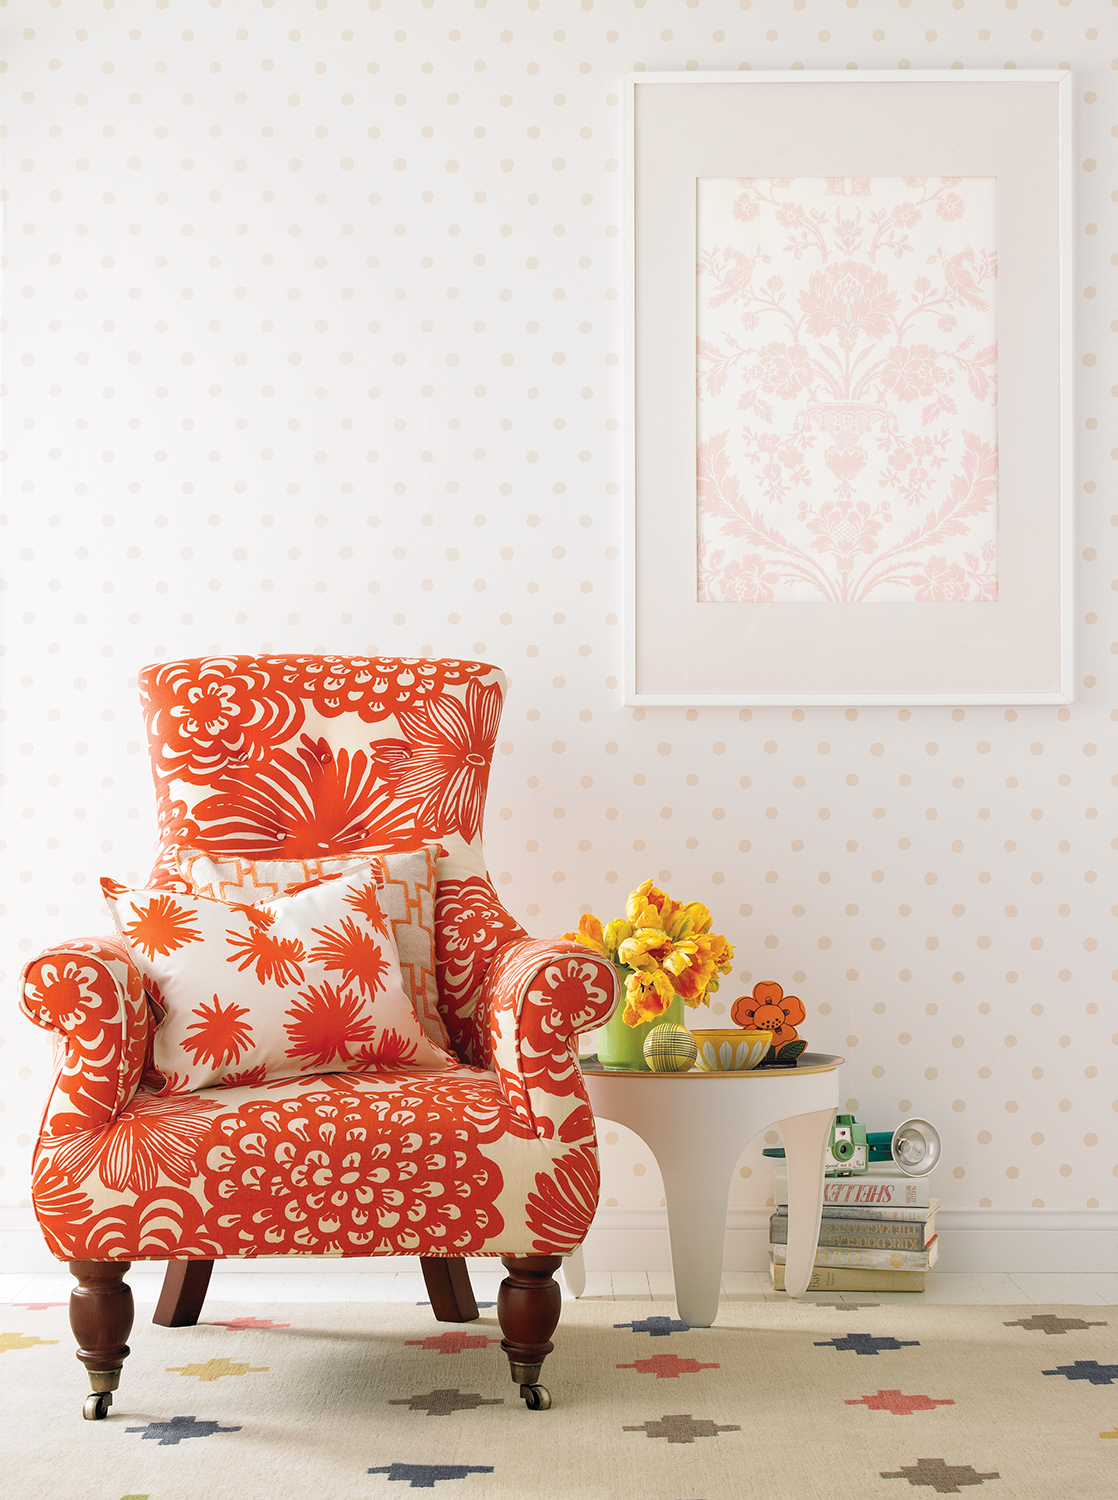 Floral patterns in a living room